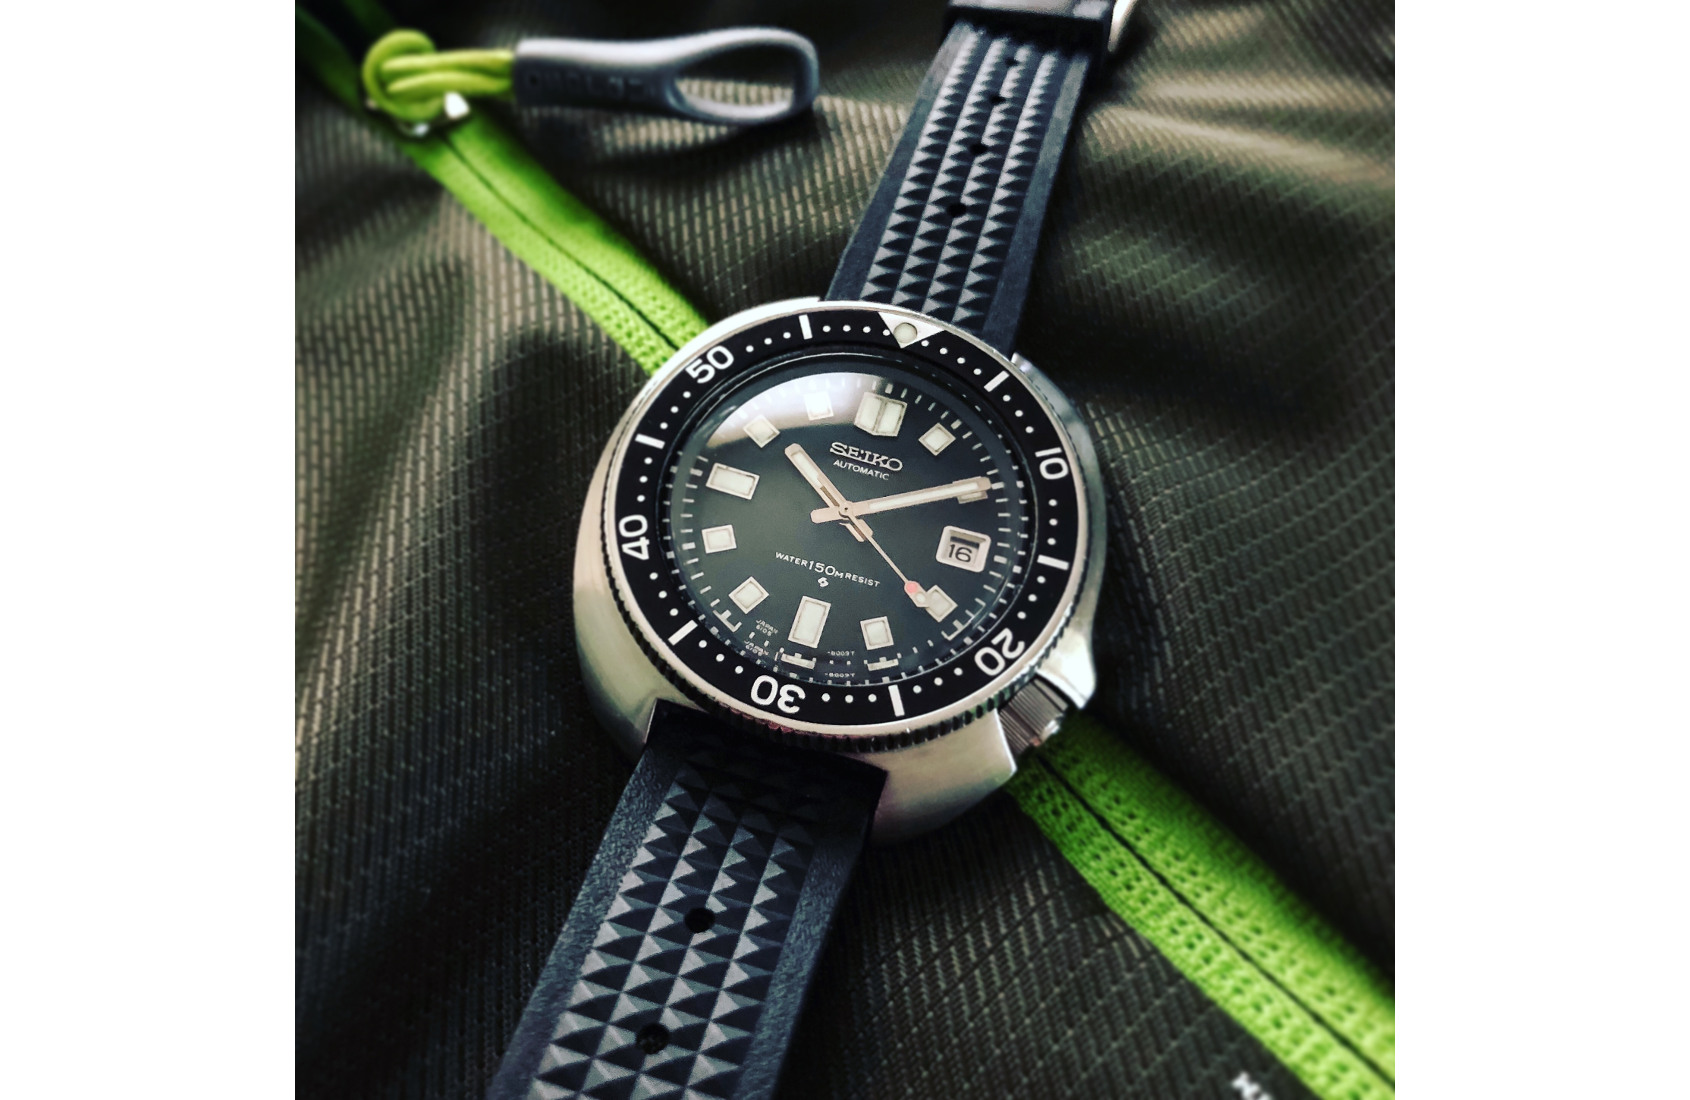 WHAT SEALED THE DEAL: On Chad's vintage Seiko 6105